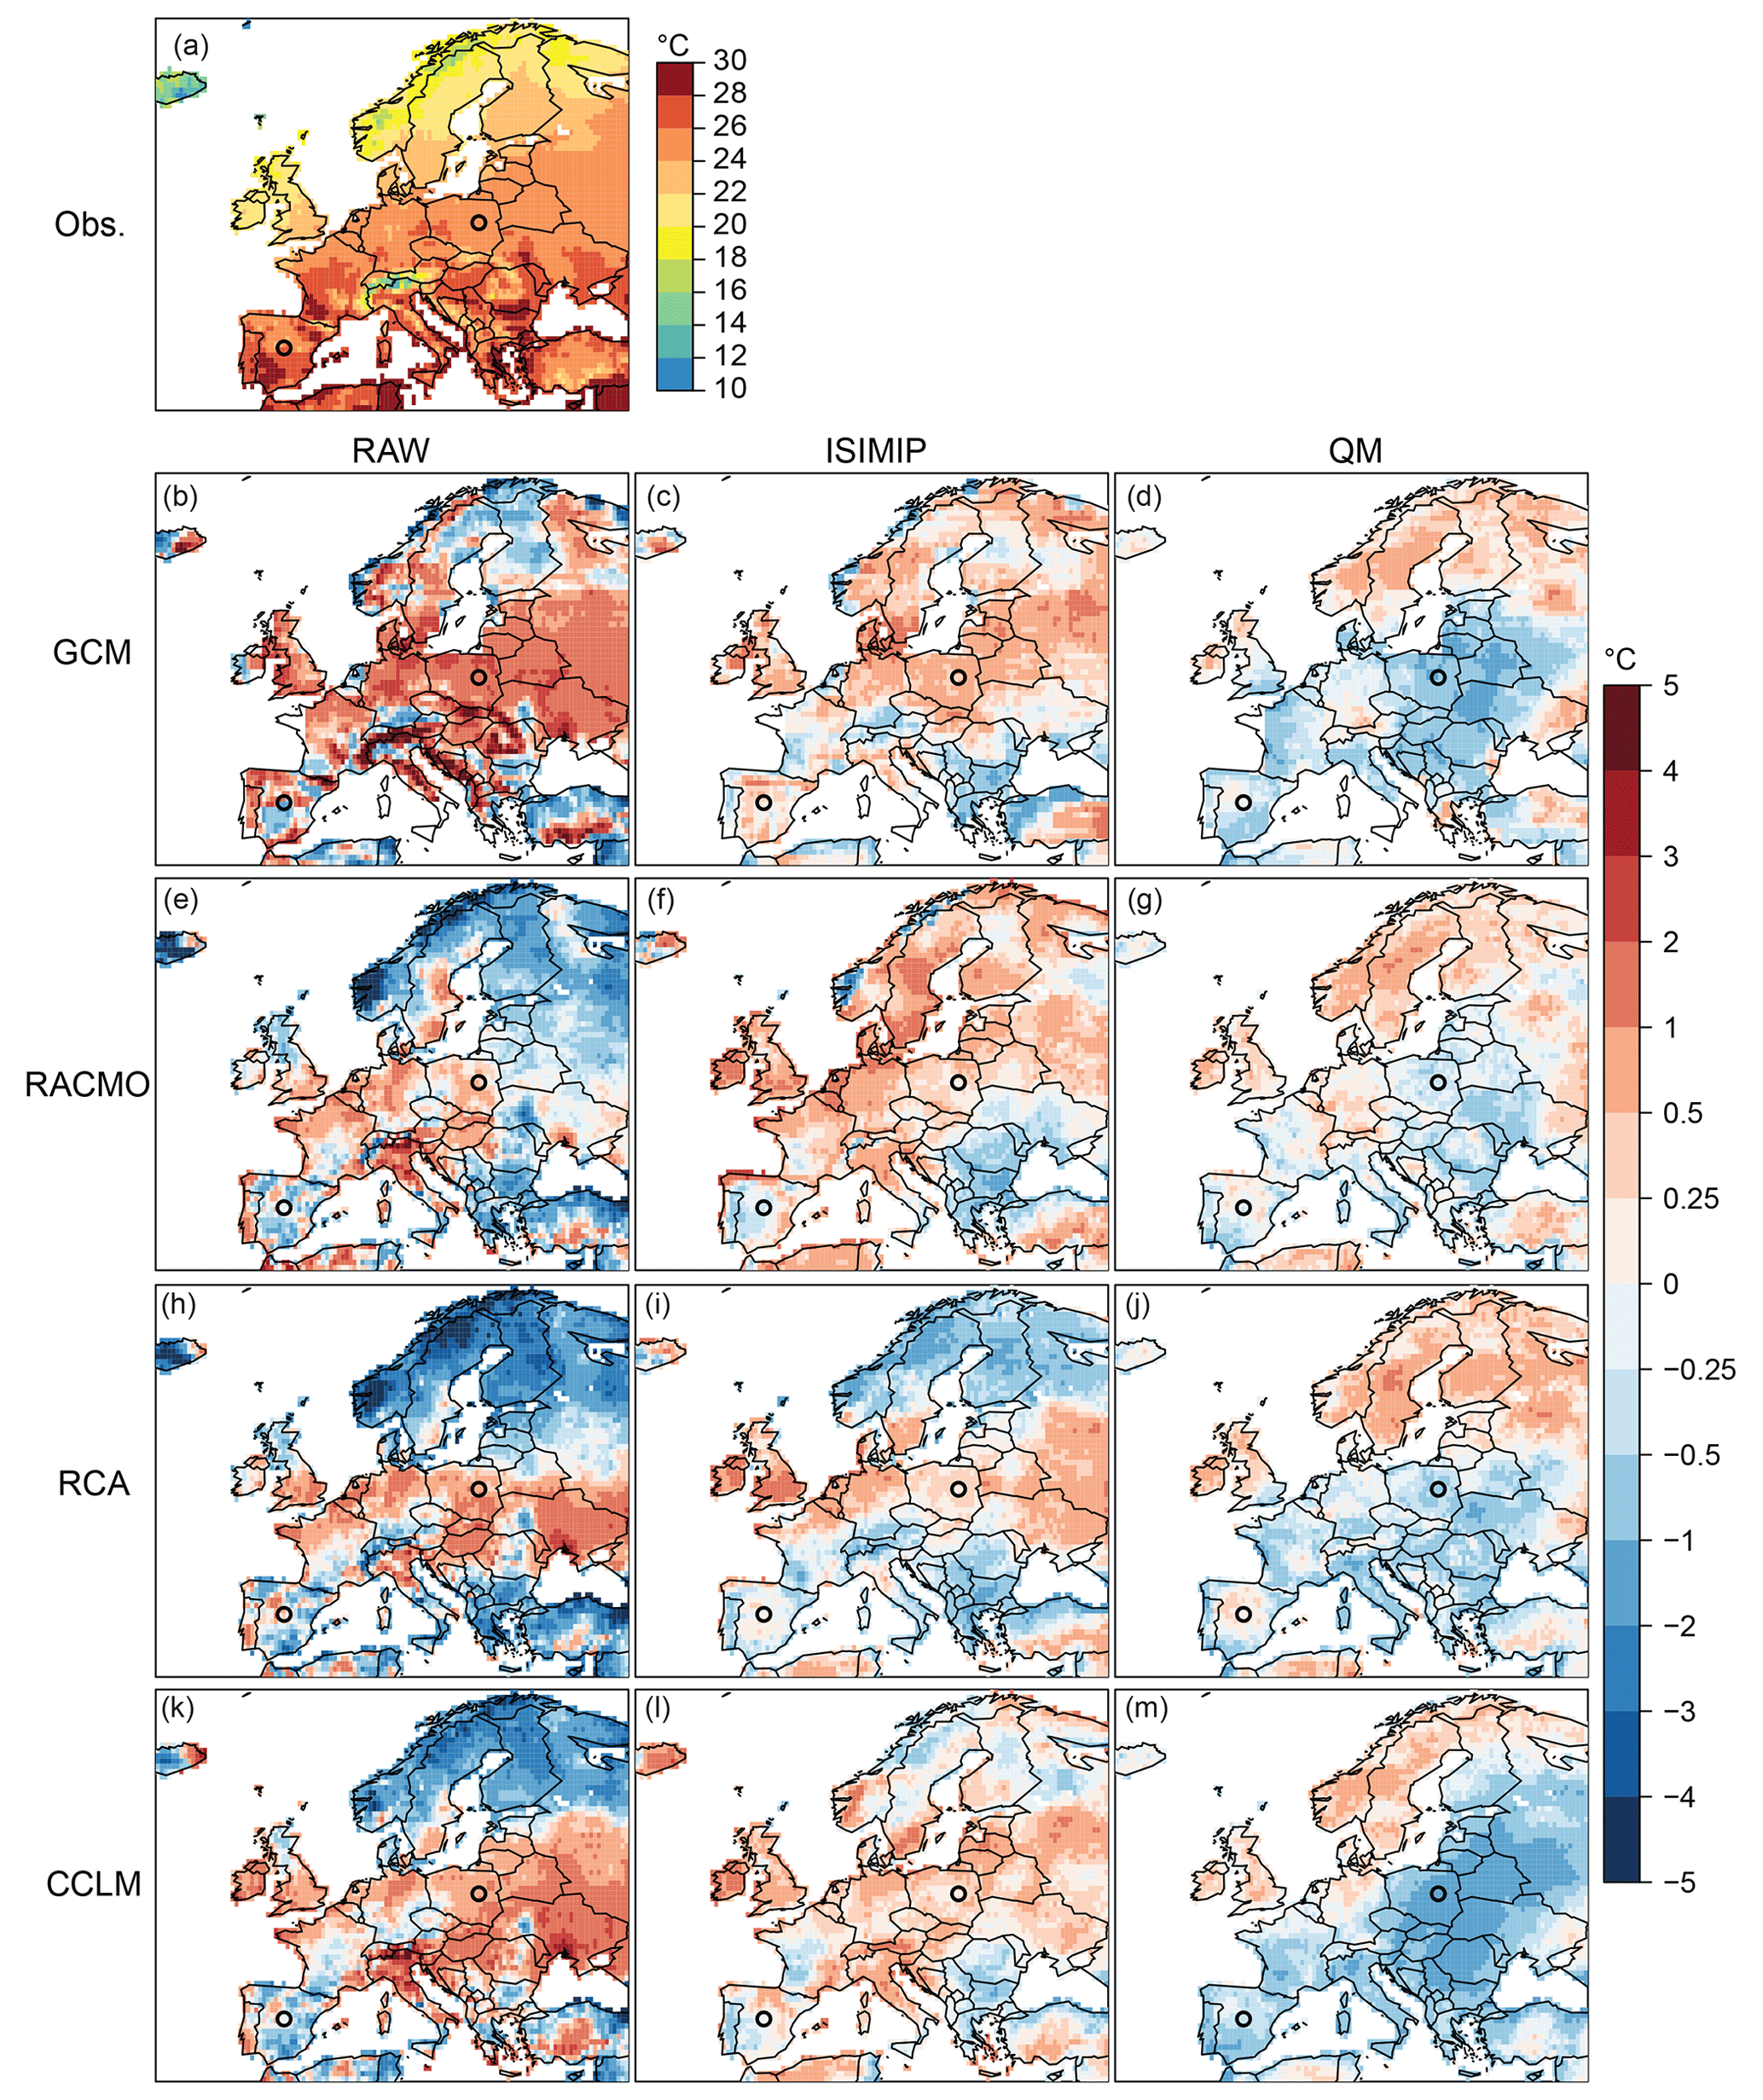 GMD - Climate projections of a multivariate heat stress index: the